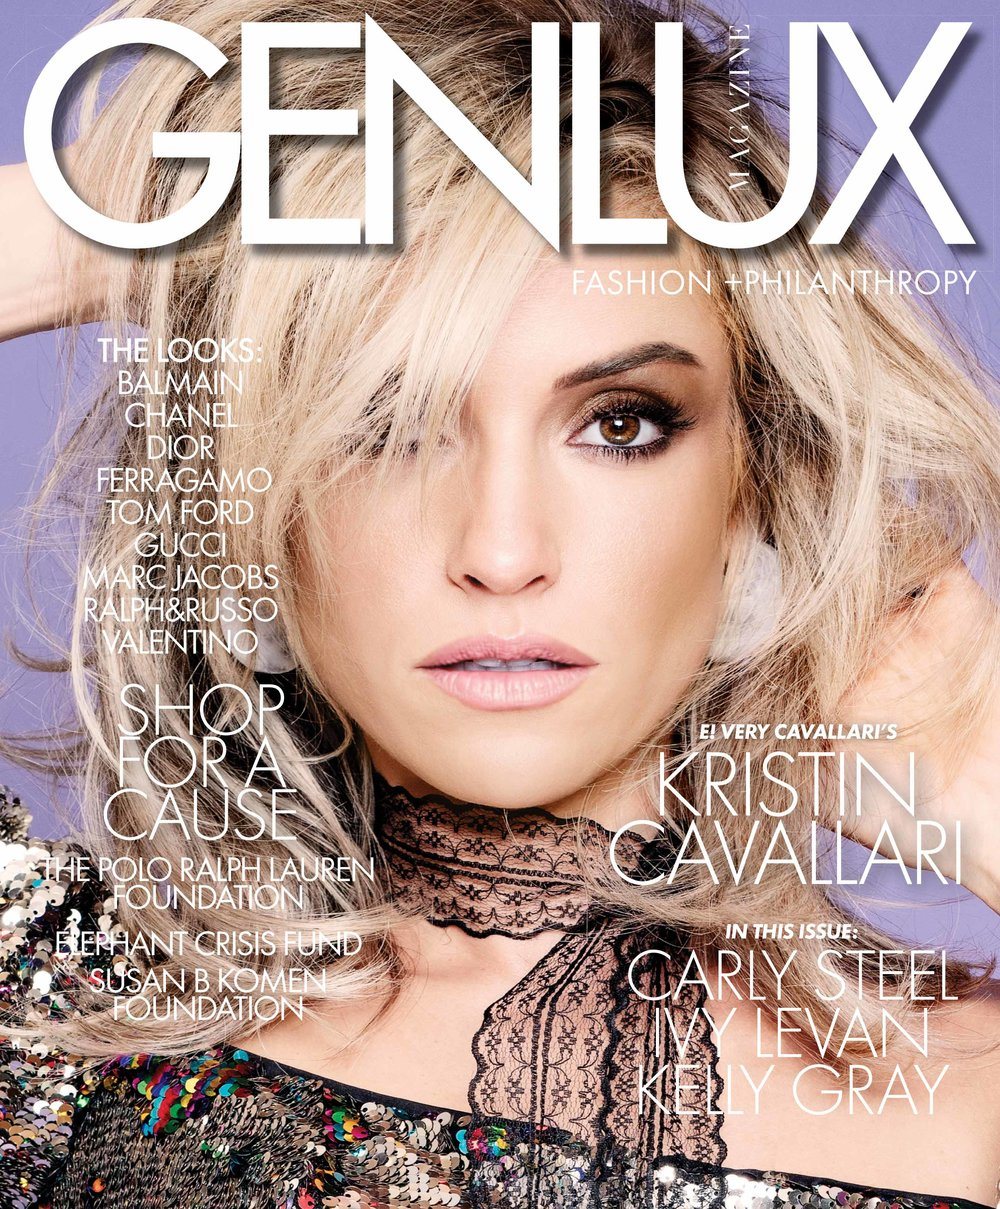 Click on cover to view Kristin Cavallari issue now!